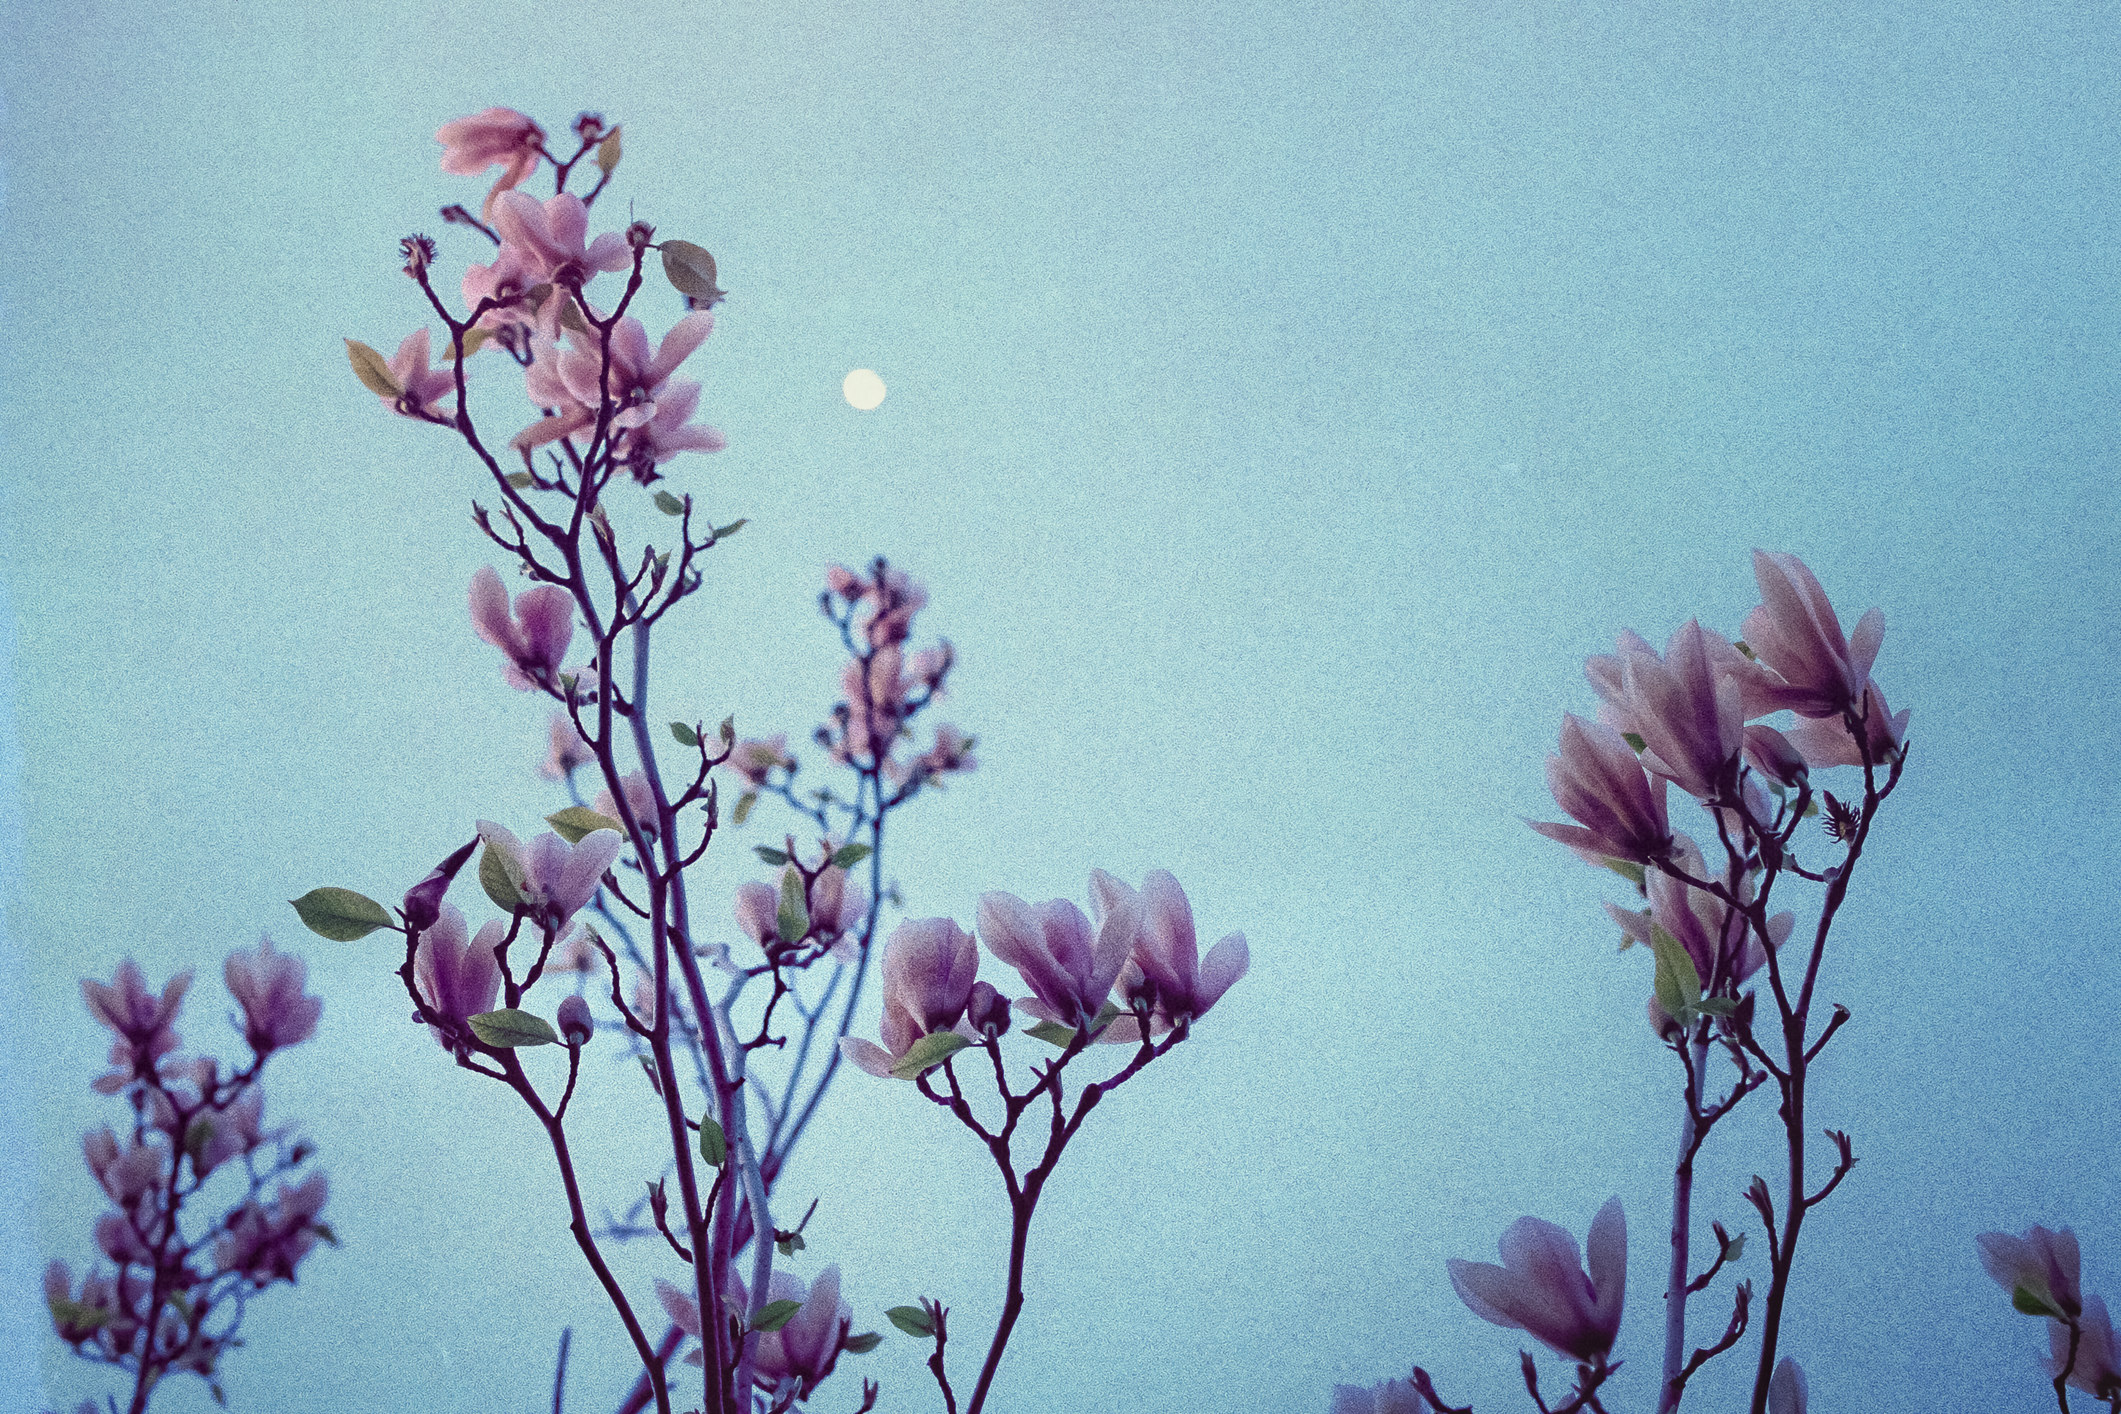 Magnolias under moonlight